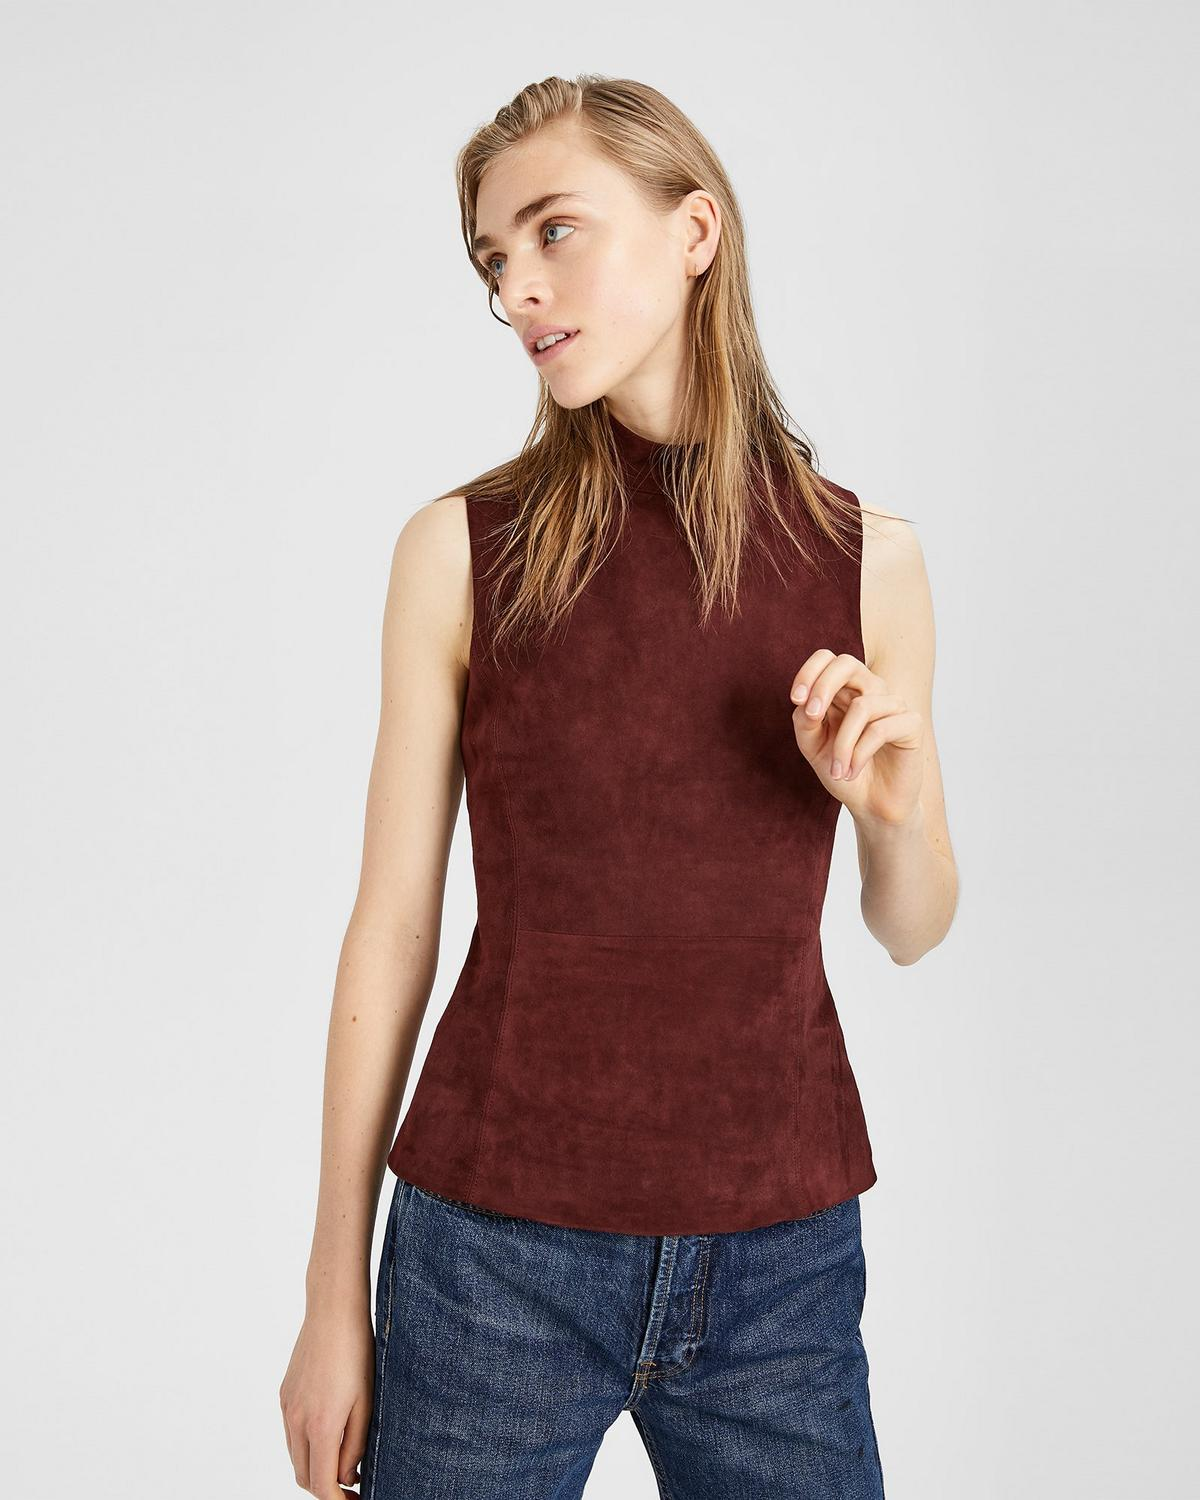 Cost Cheap Theory Sleeveless Suede Top Discount 2018 New yvXQrjpa